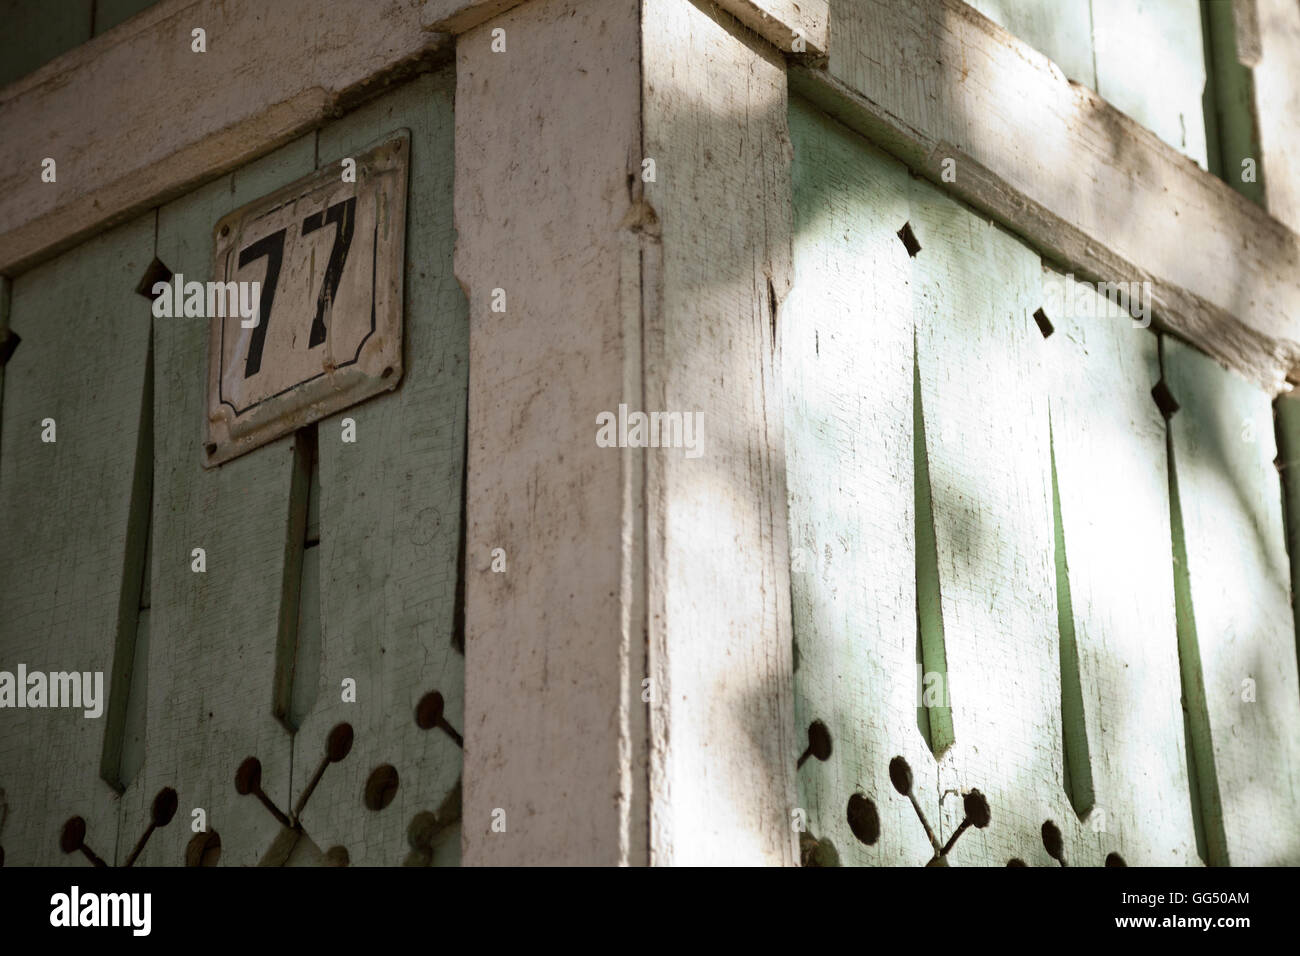 Traditional Russian wooden house with number plate close-up. Wood carved decorations on a green rustic building - Stock Image